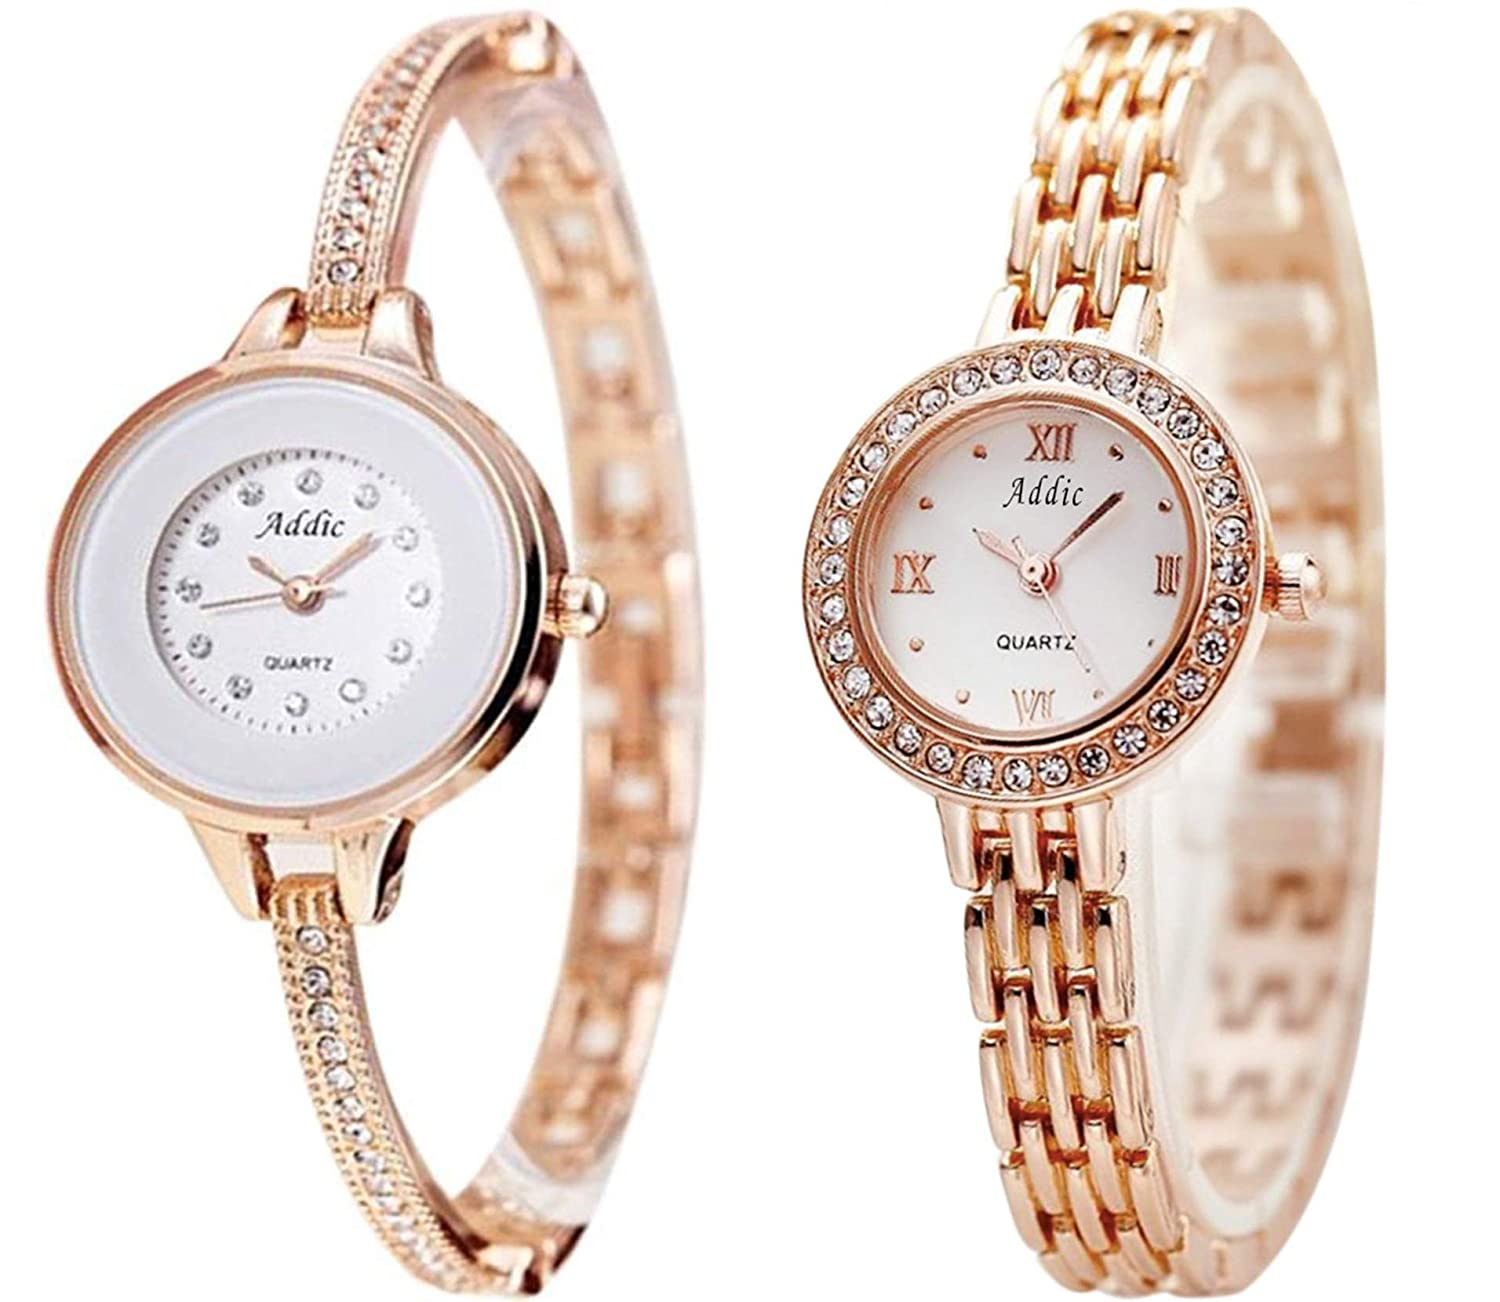 28cca56a012 Buy Addic Analogue White Dial Women s Watches -Combo of 2 Online at Low  Prices in India - Amazon.in